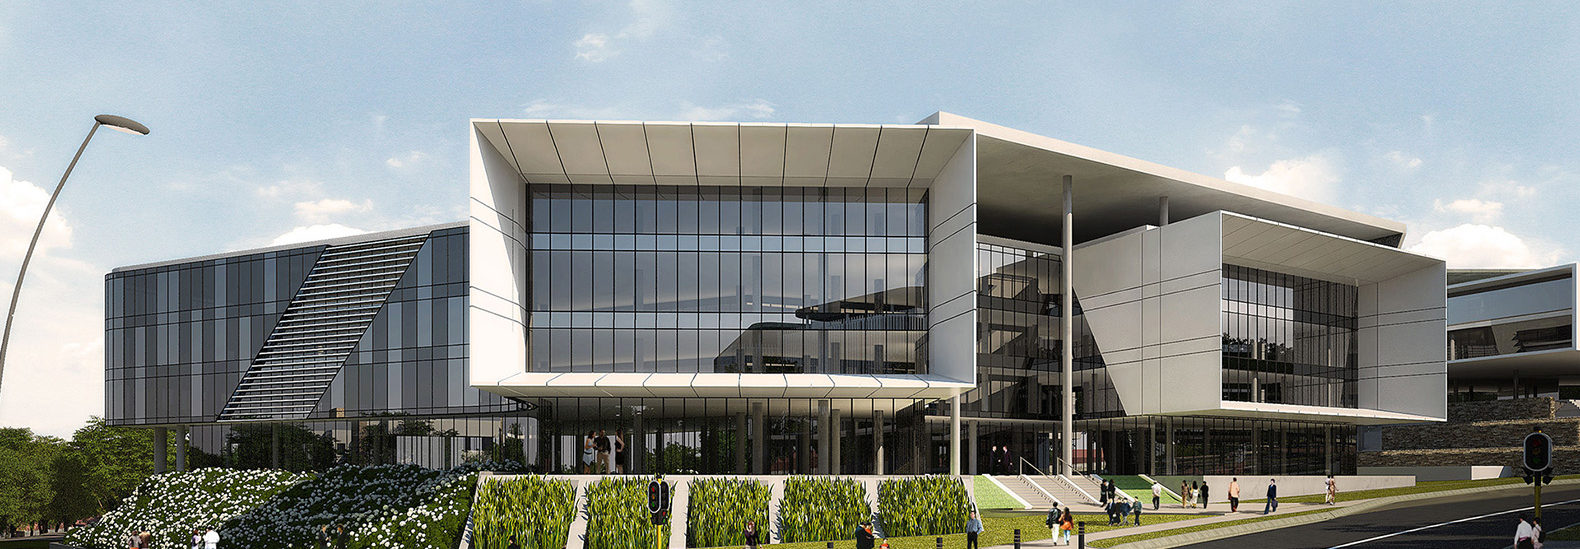 Star shaped schneider electric office building in south africa star shaped schneider electric building in south africa aims for leed gold certification 1betcityfo Gallery